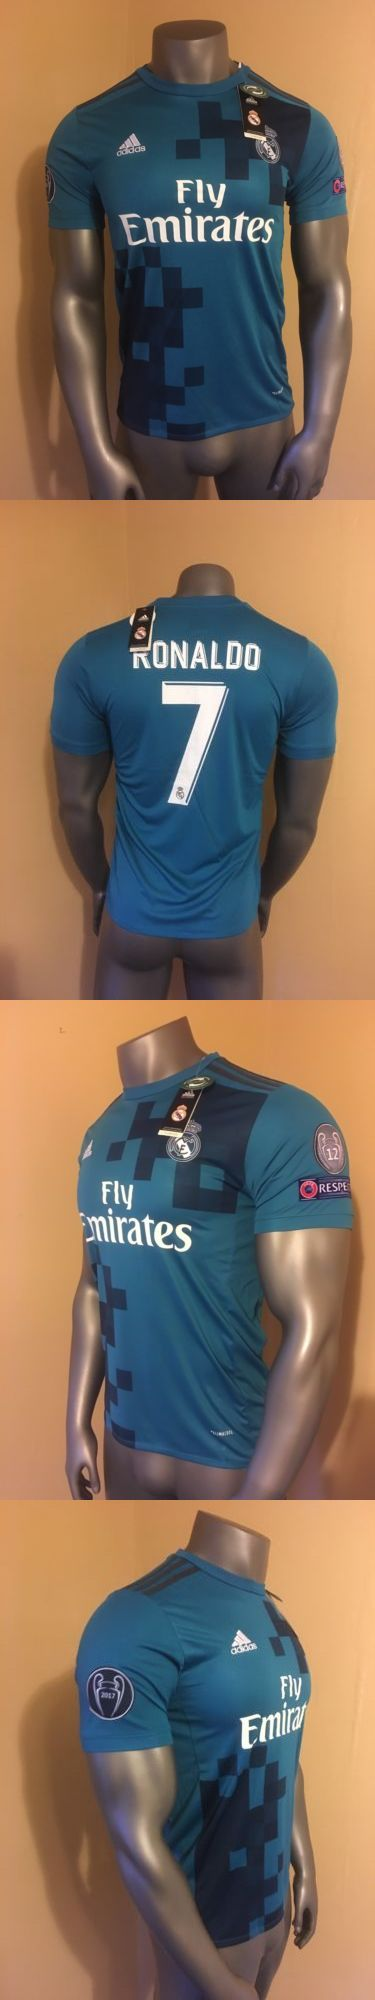 Soccer-International Clubs 2887: Real Madrid Blue Cristiano Ronaldo 3Rd Kit Champions League Soccer Jersey 2018 -> BUY IT NOW ONLY: $49.99 on eBay!